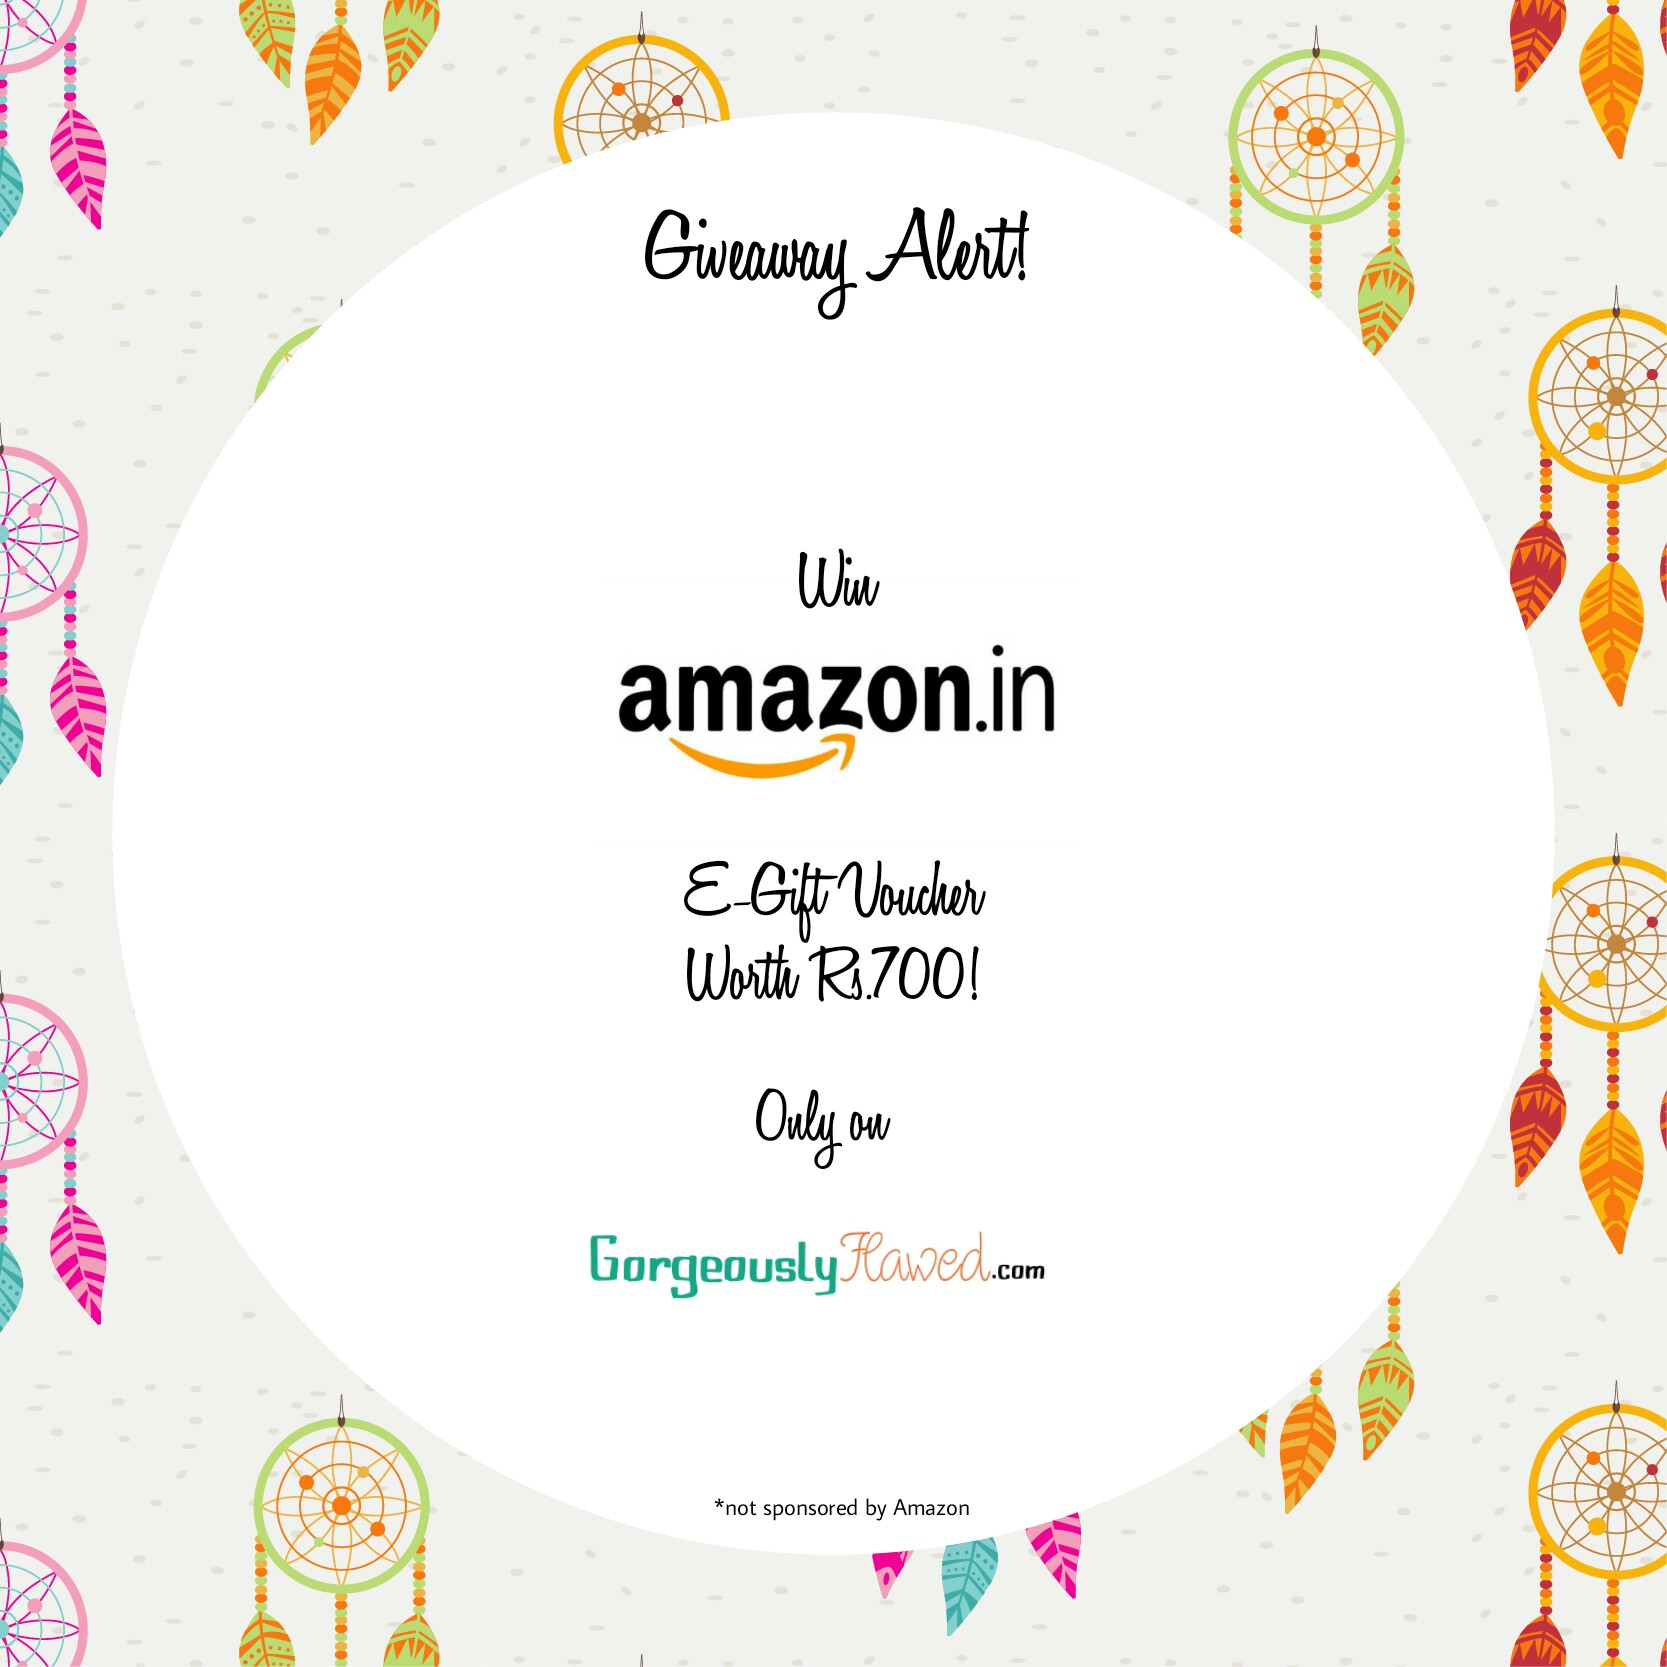 Gorgeously Flawed Giveaway | Amazon Gift Voucher Giveaway | Free Amazon Gift Voucher